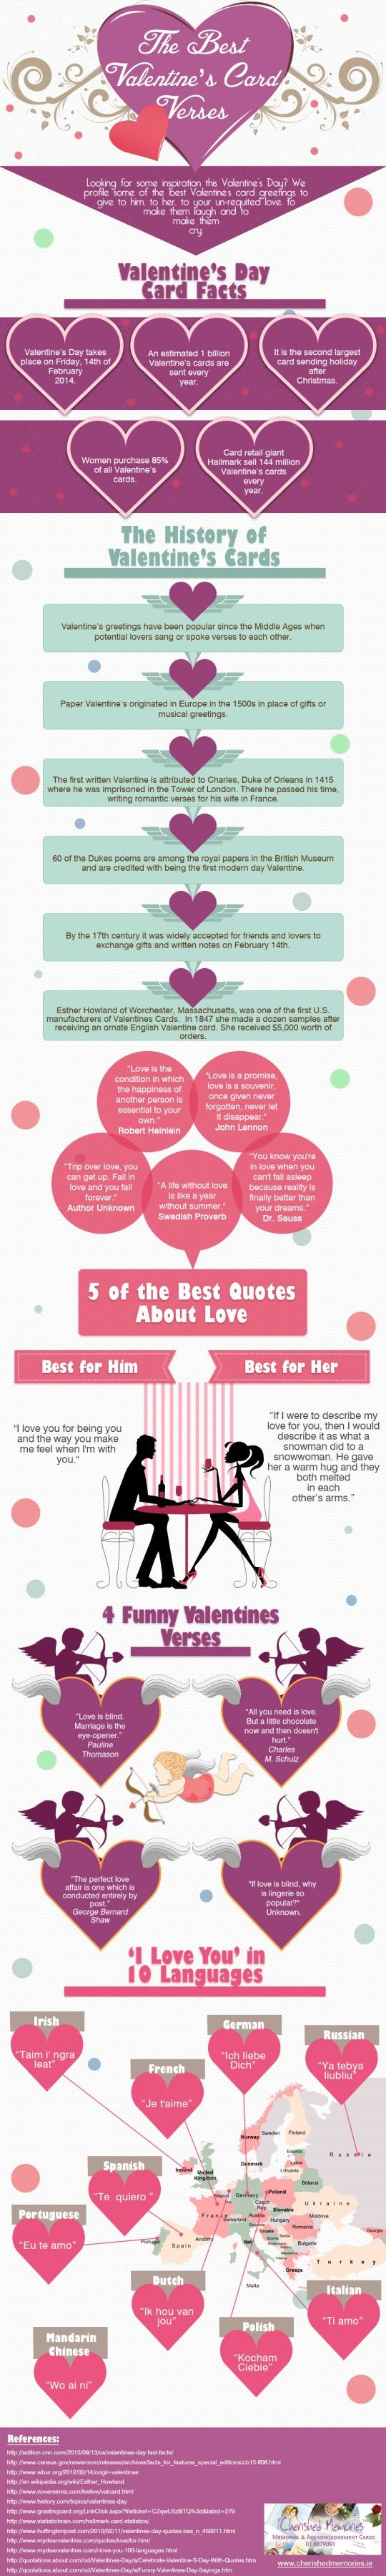 Valentine's messages infographic